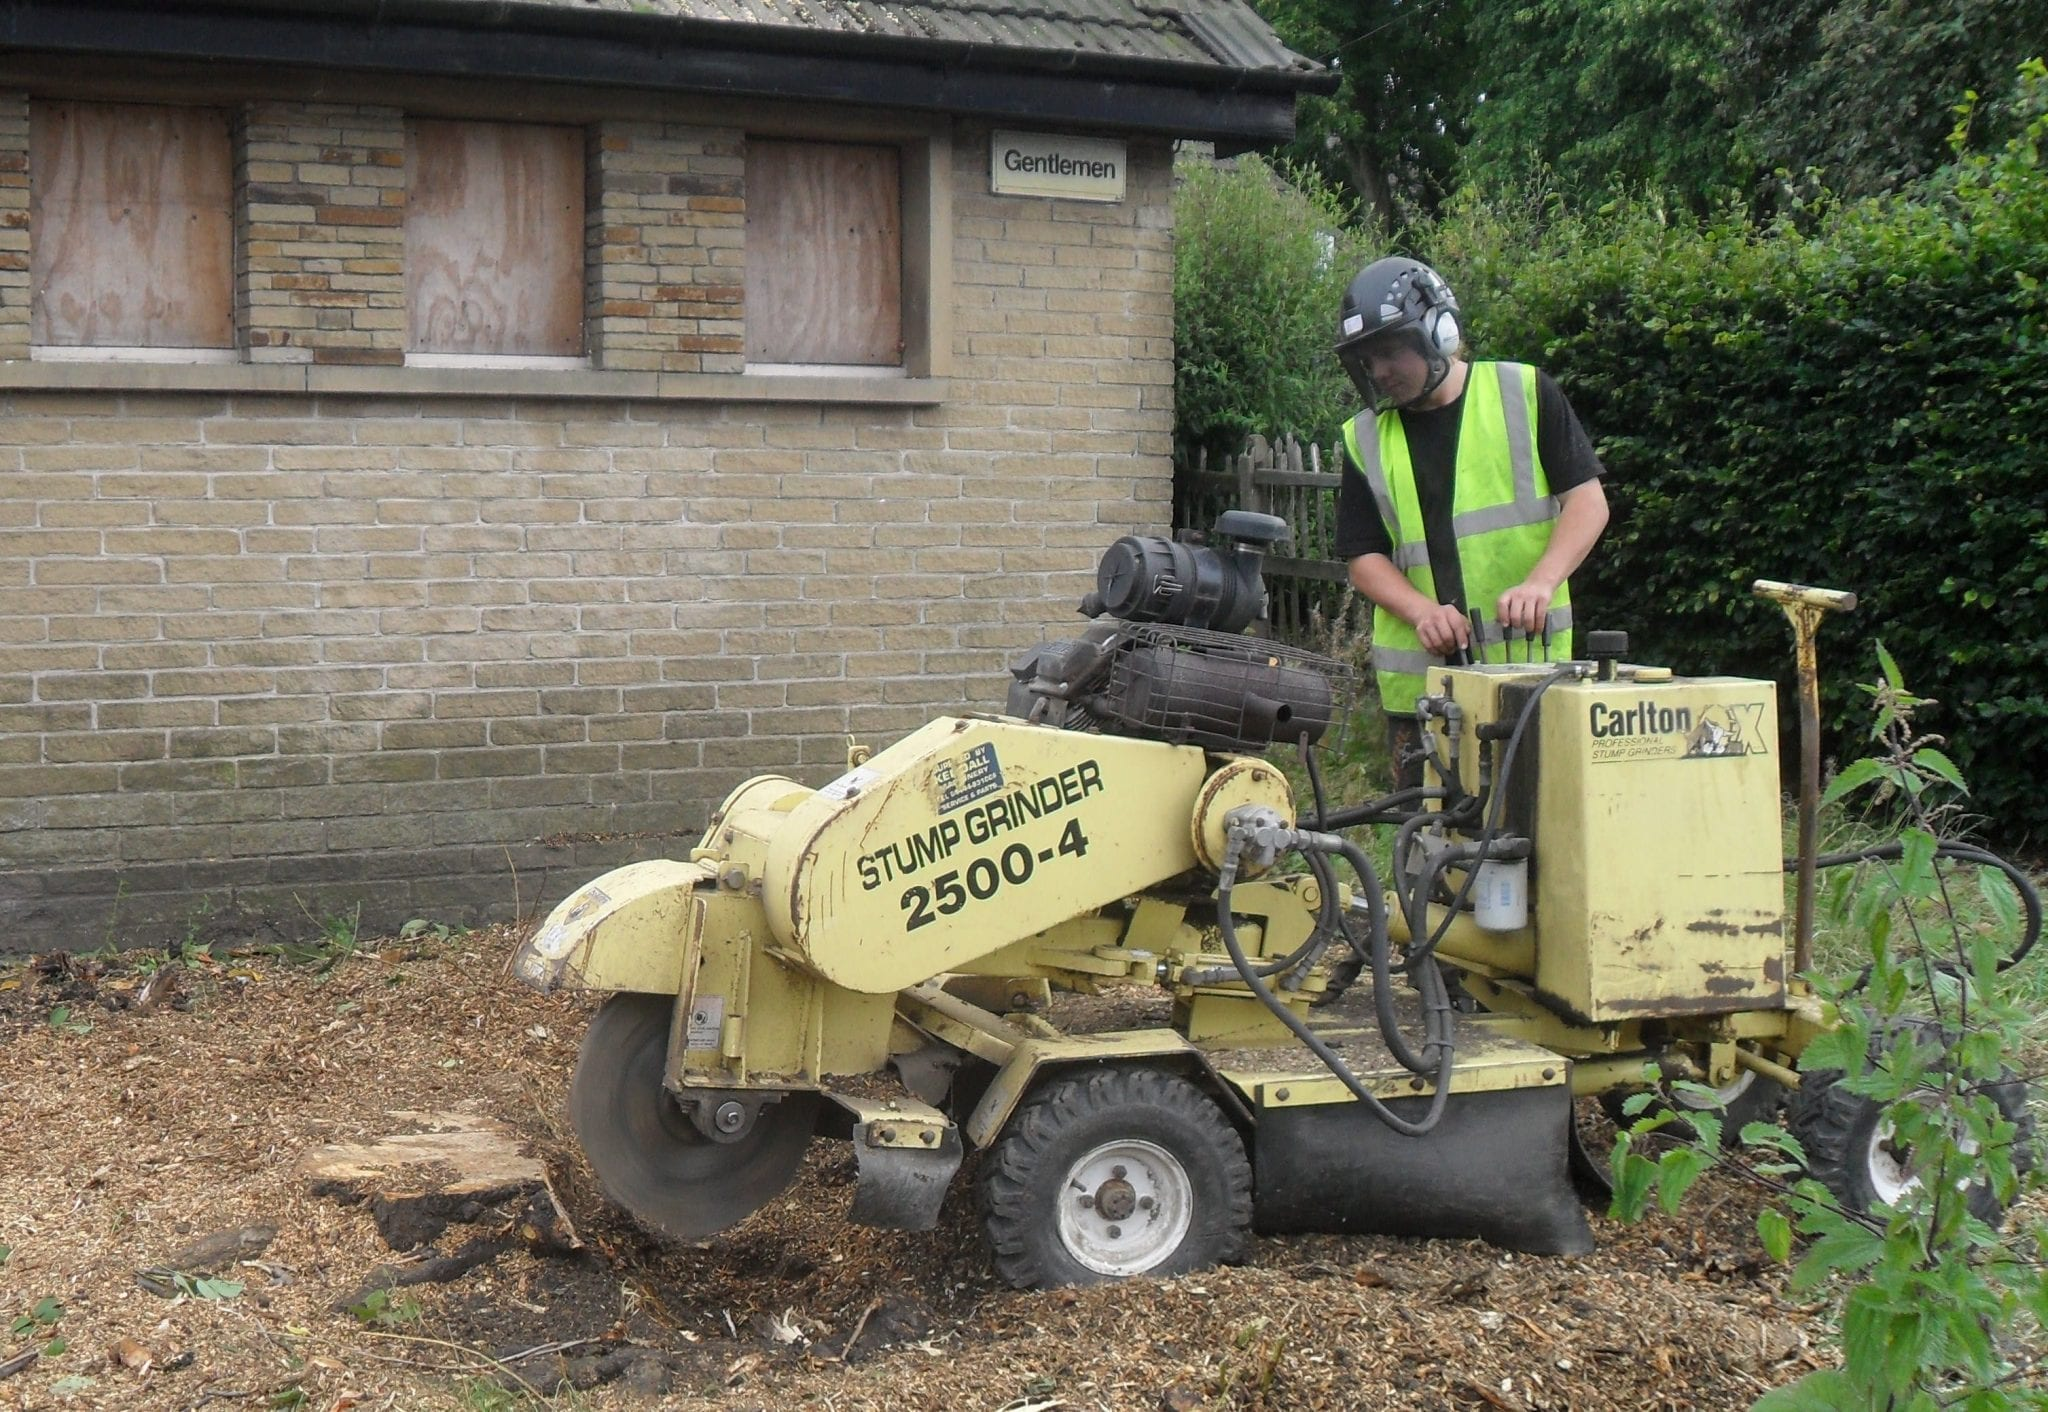 tree surgeon using a Stump grinder to remove a tree stump